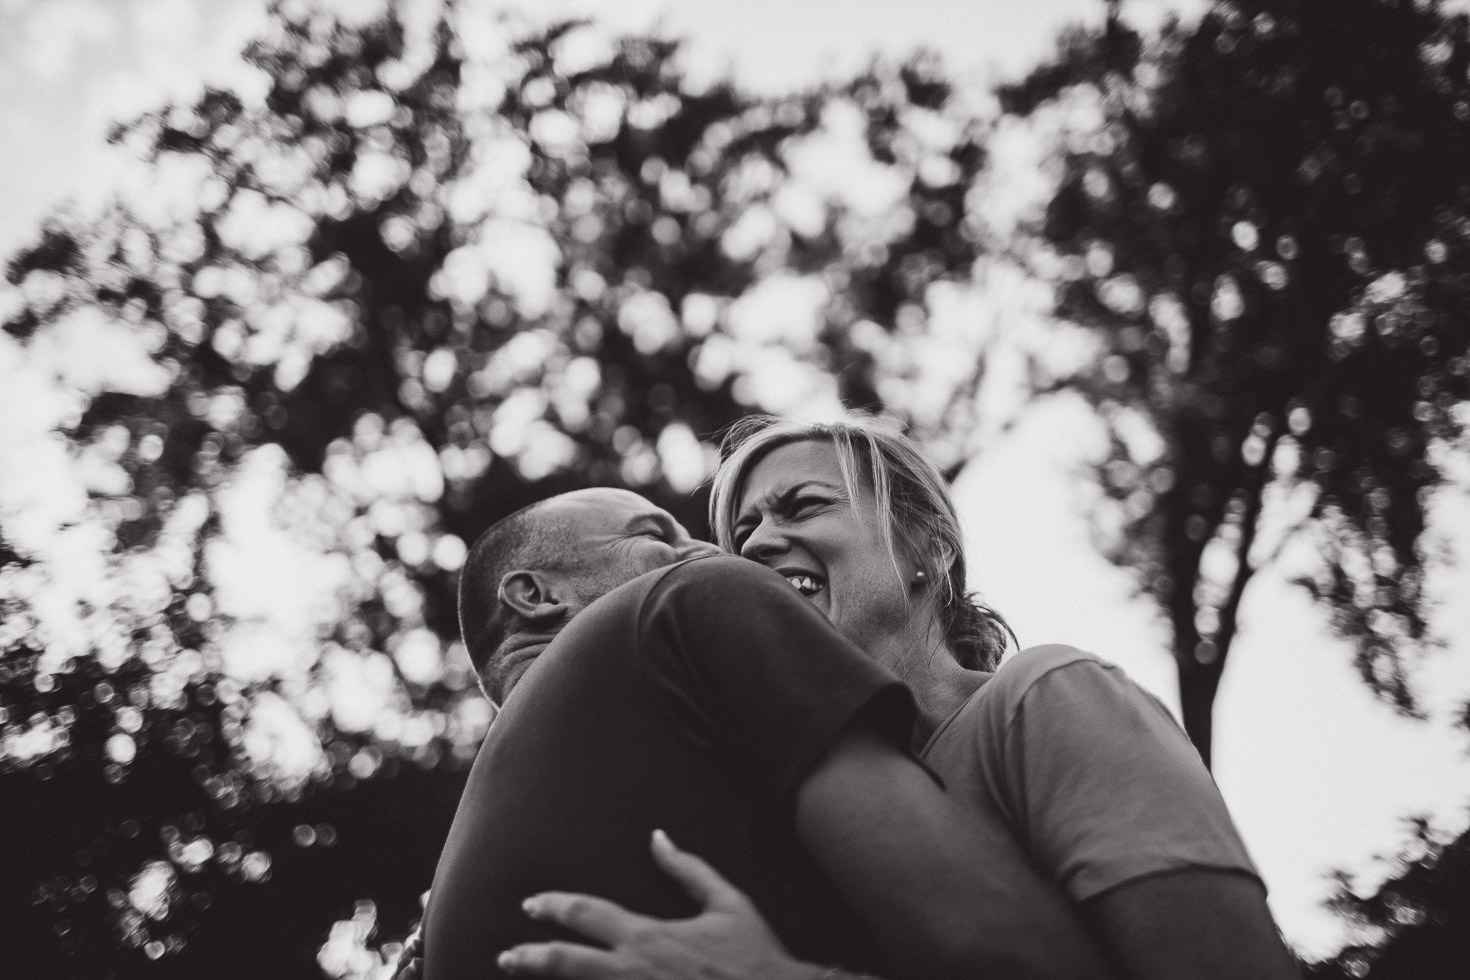 Couple embracing in laughter, wide angle image shot from below, black and white